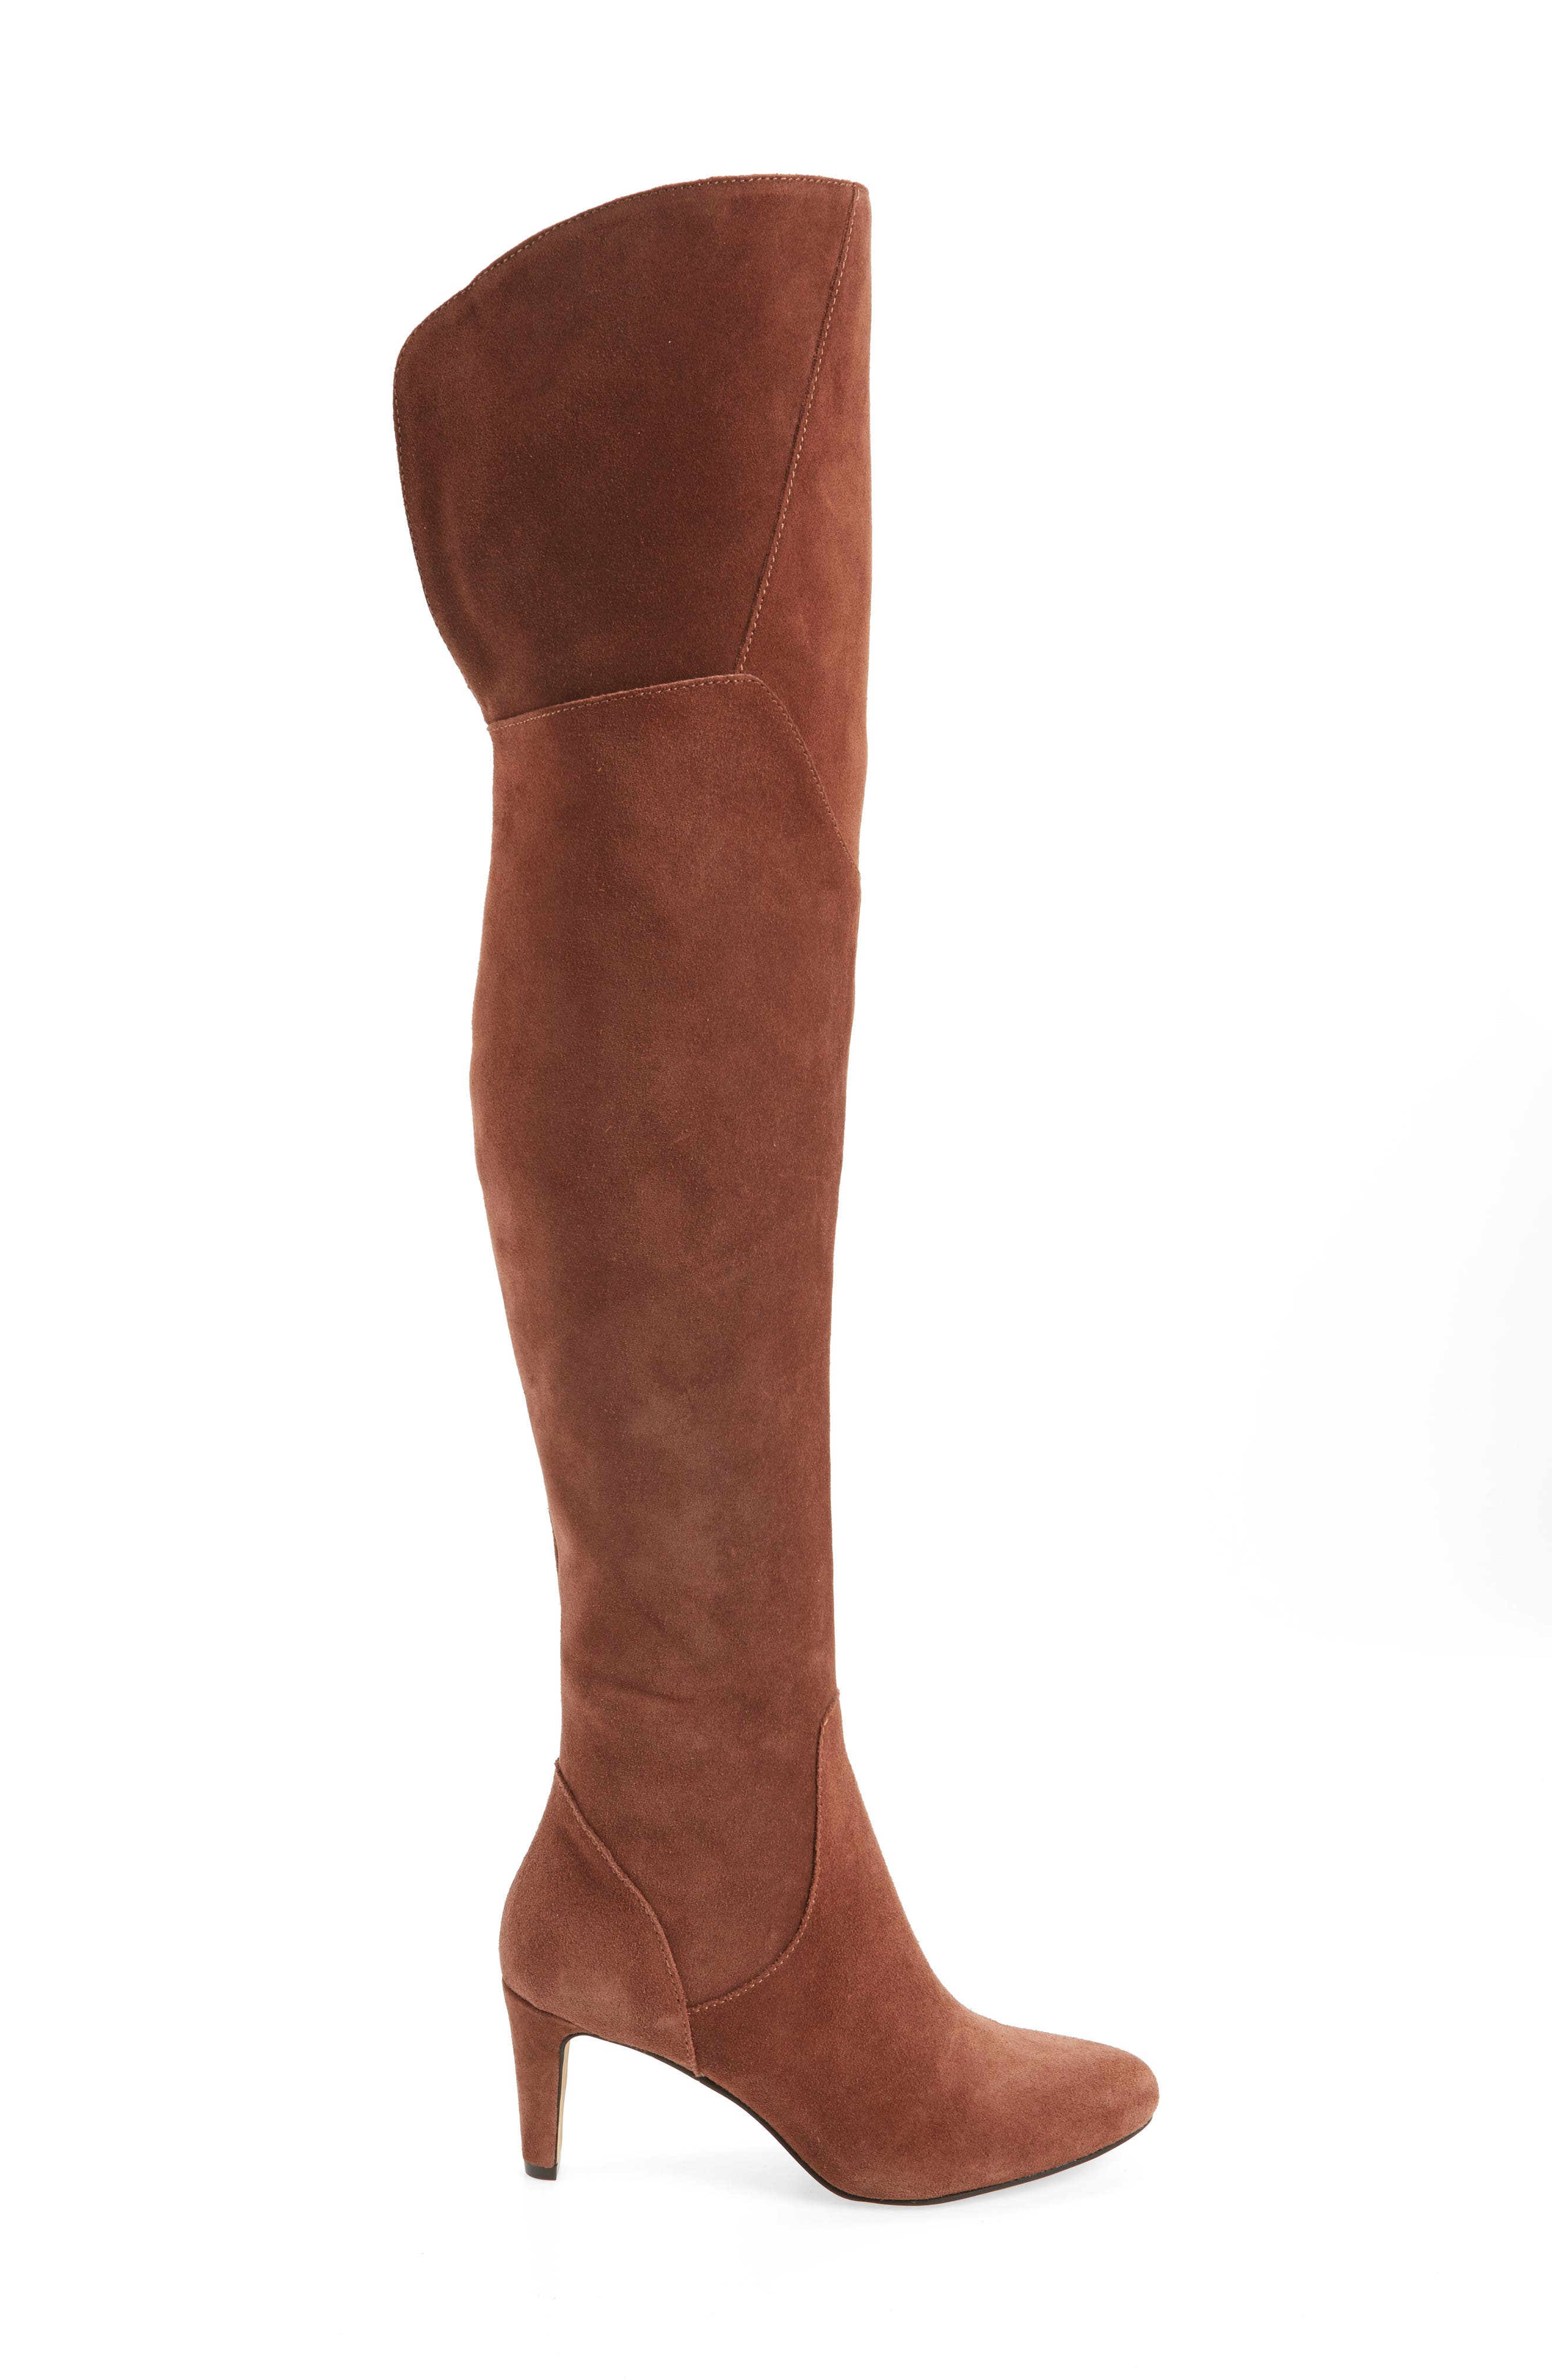 Armaceli Over the Knee Boot,                             Alternate thumbnail 10, color,